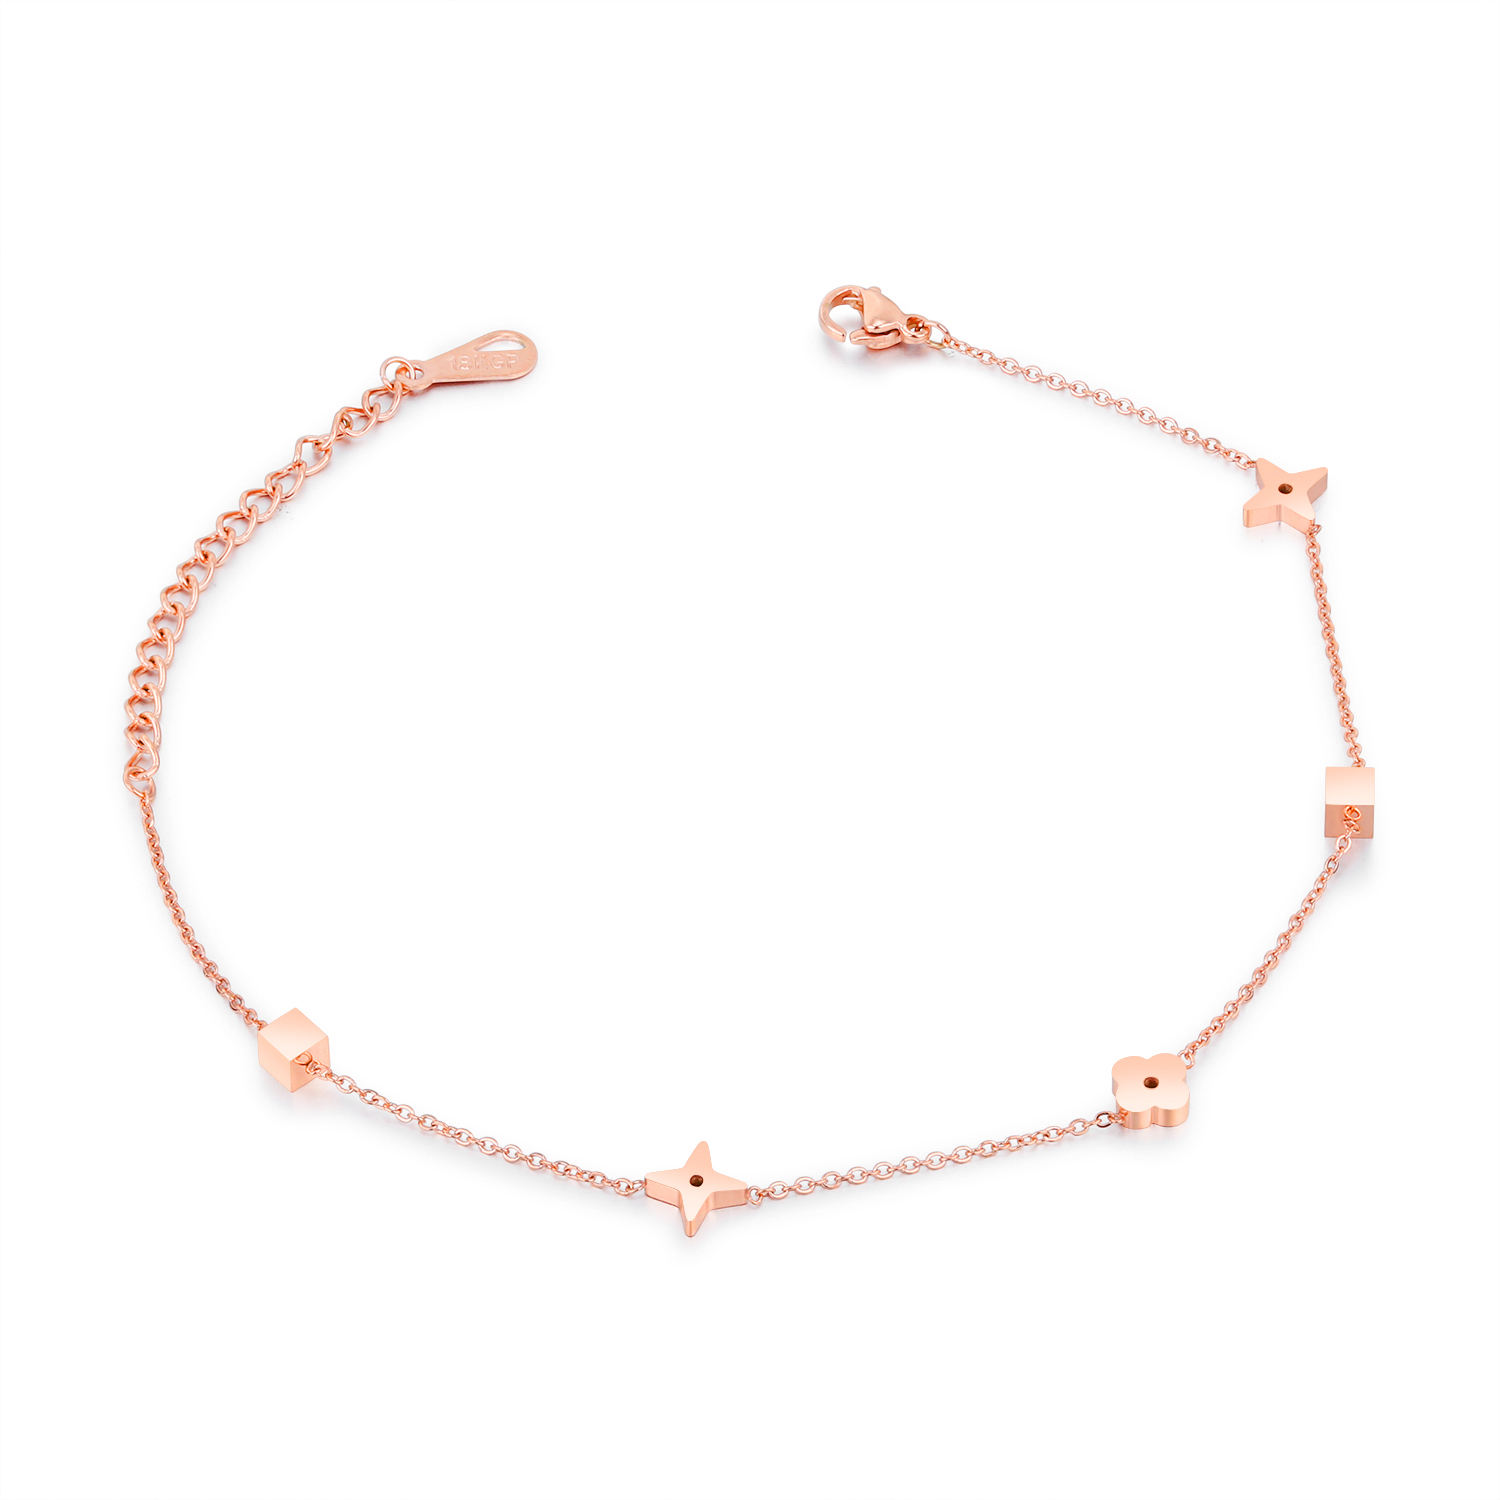 Wholesale fashion gold plated jewelry ankle bracelet for women GZ042